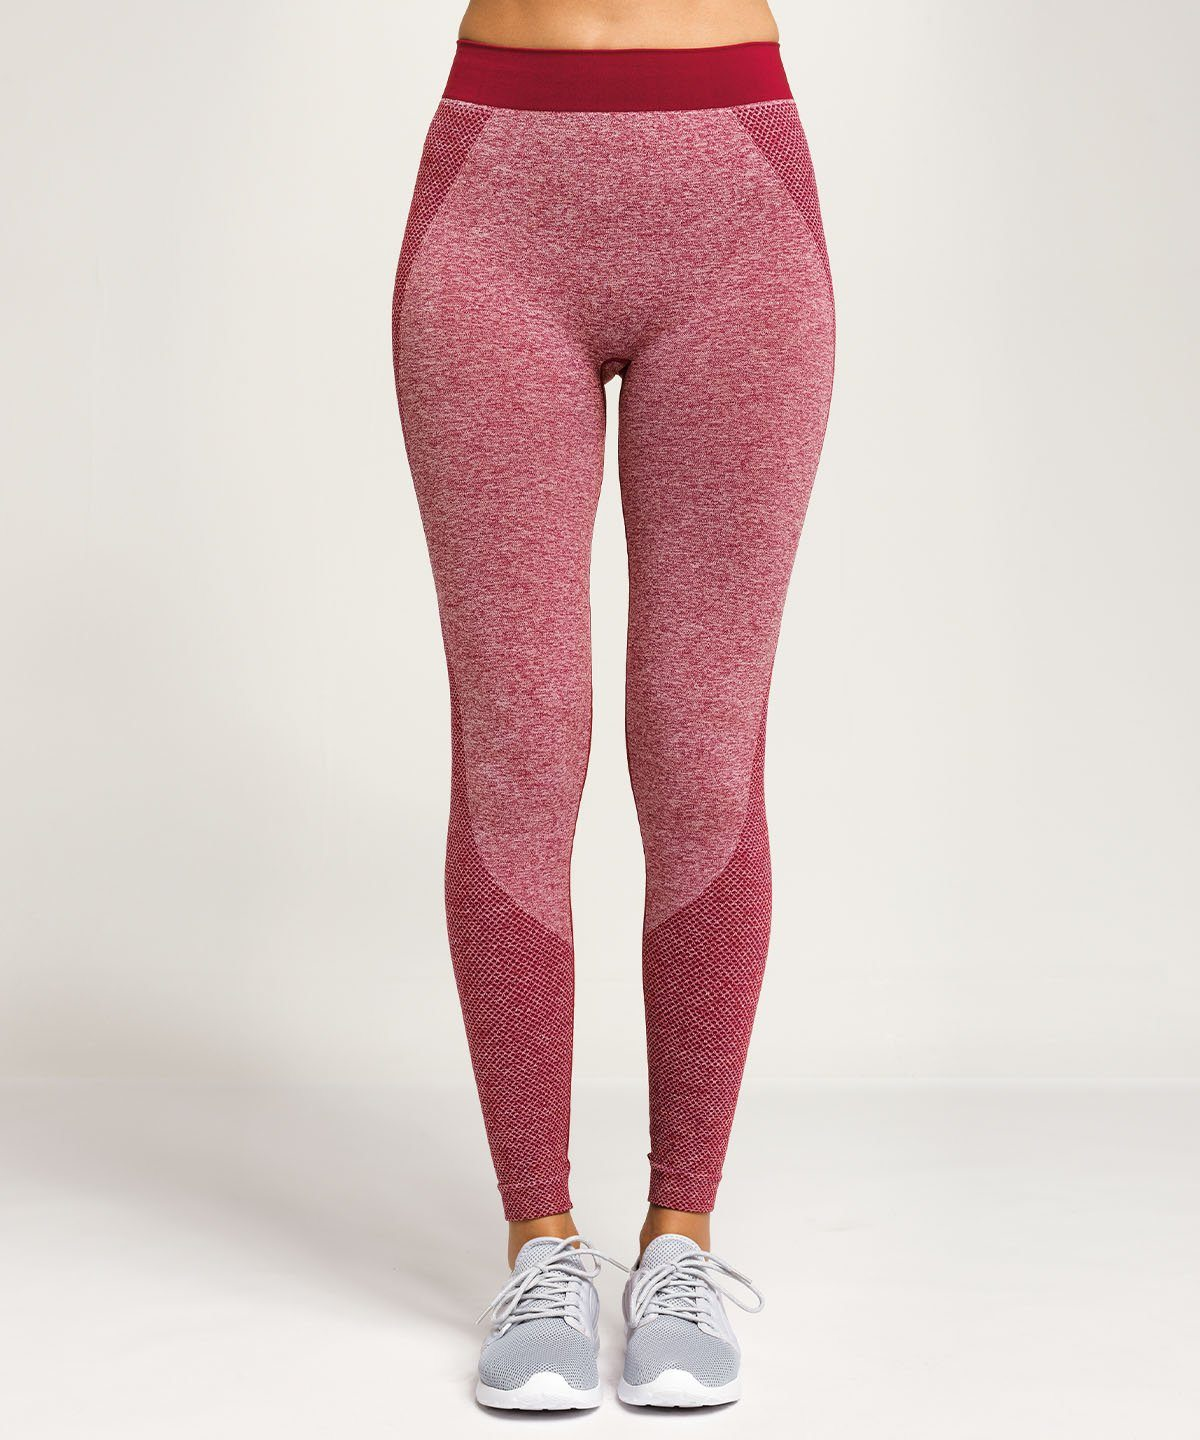 Seamless 3D Fit Sculpt Leggings Primate Activewear